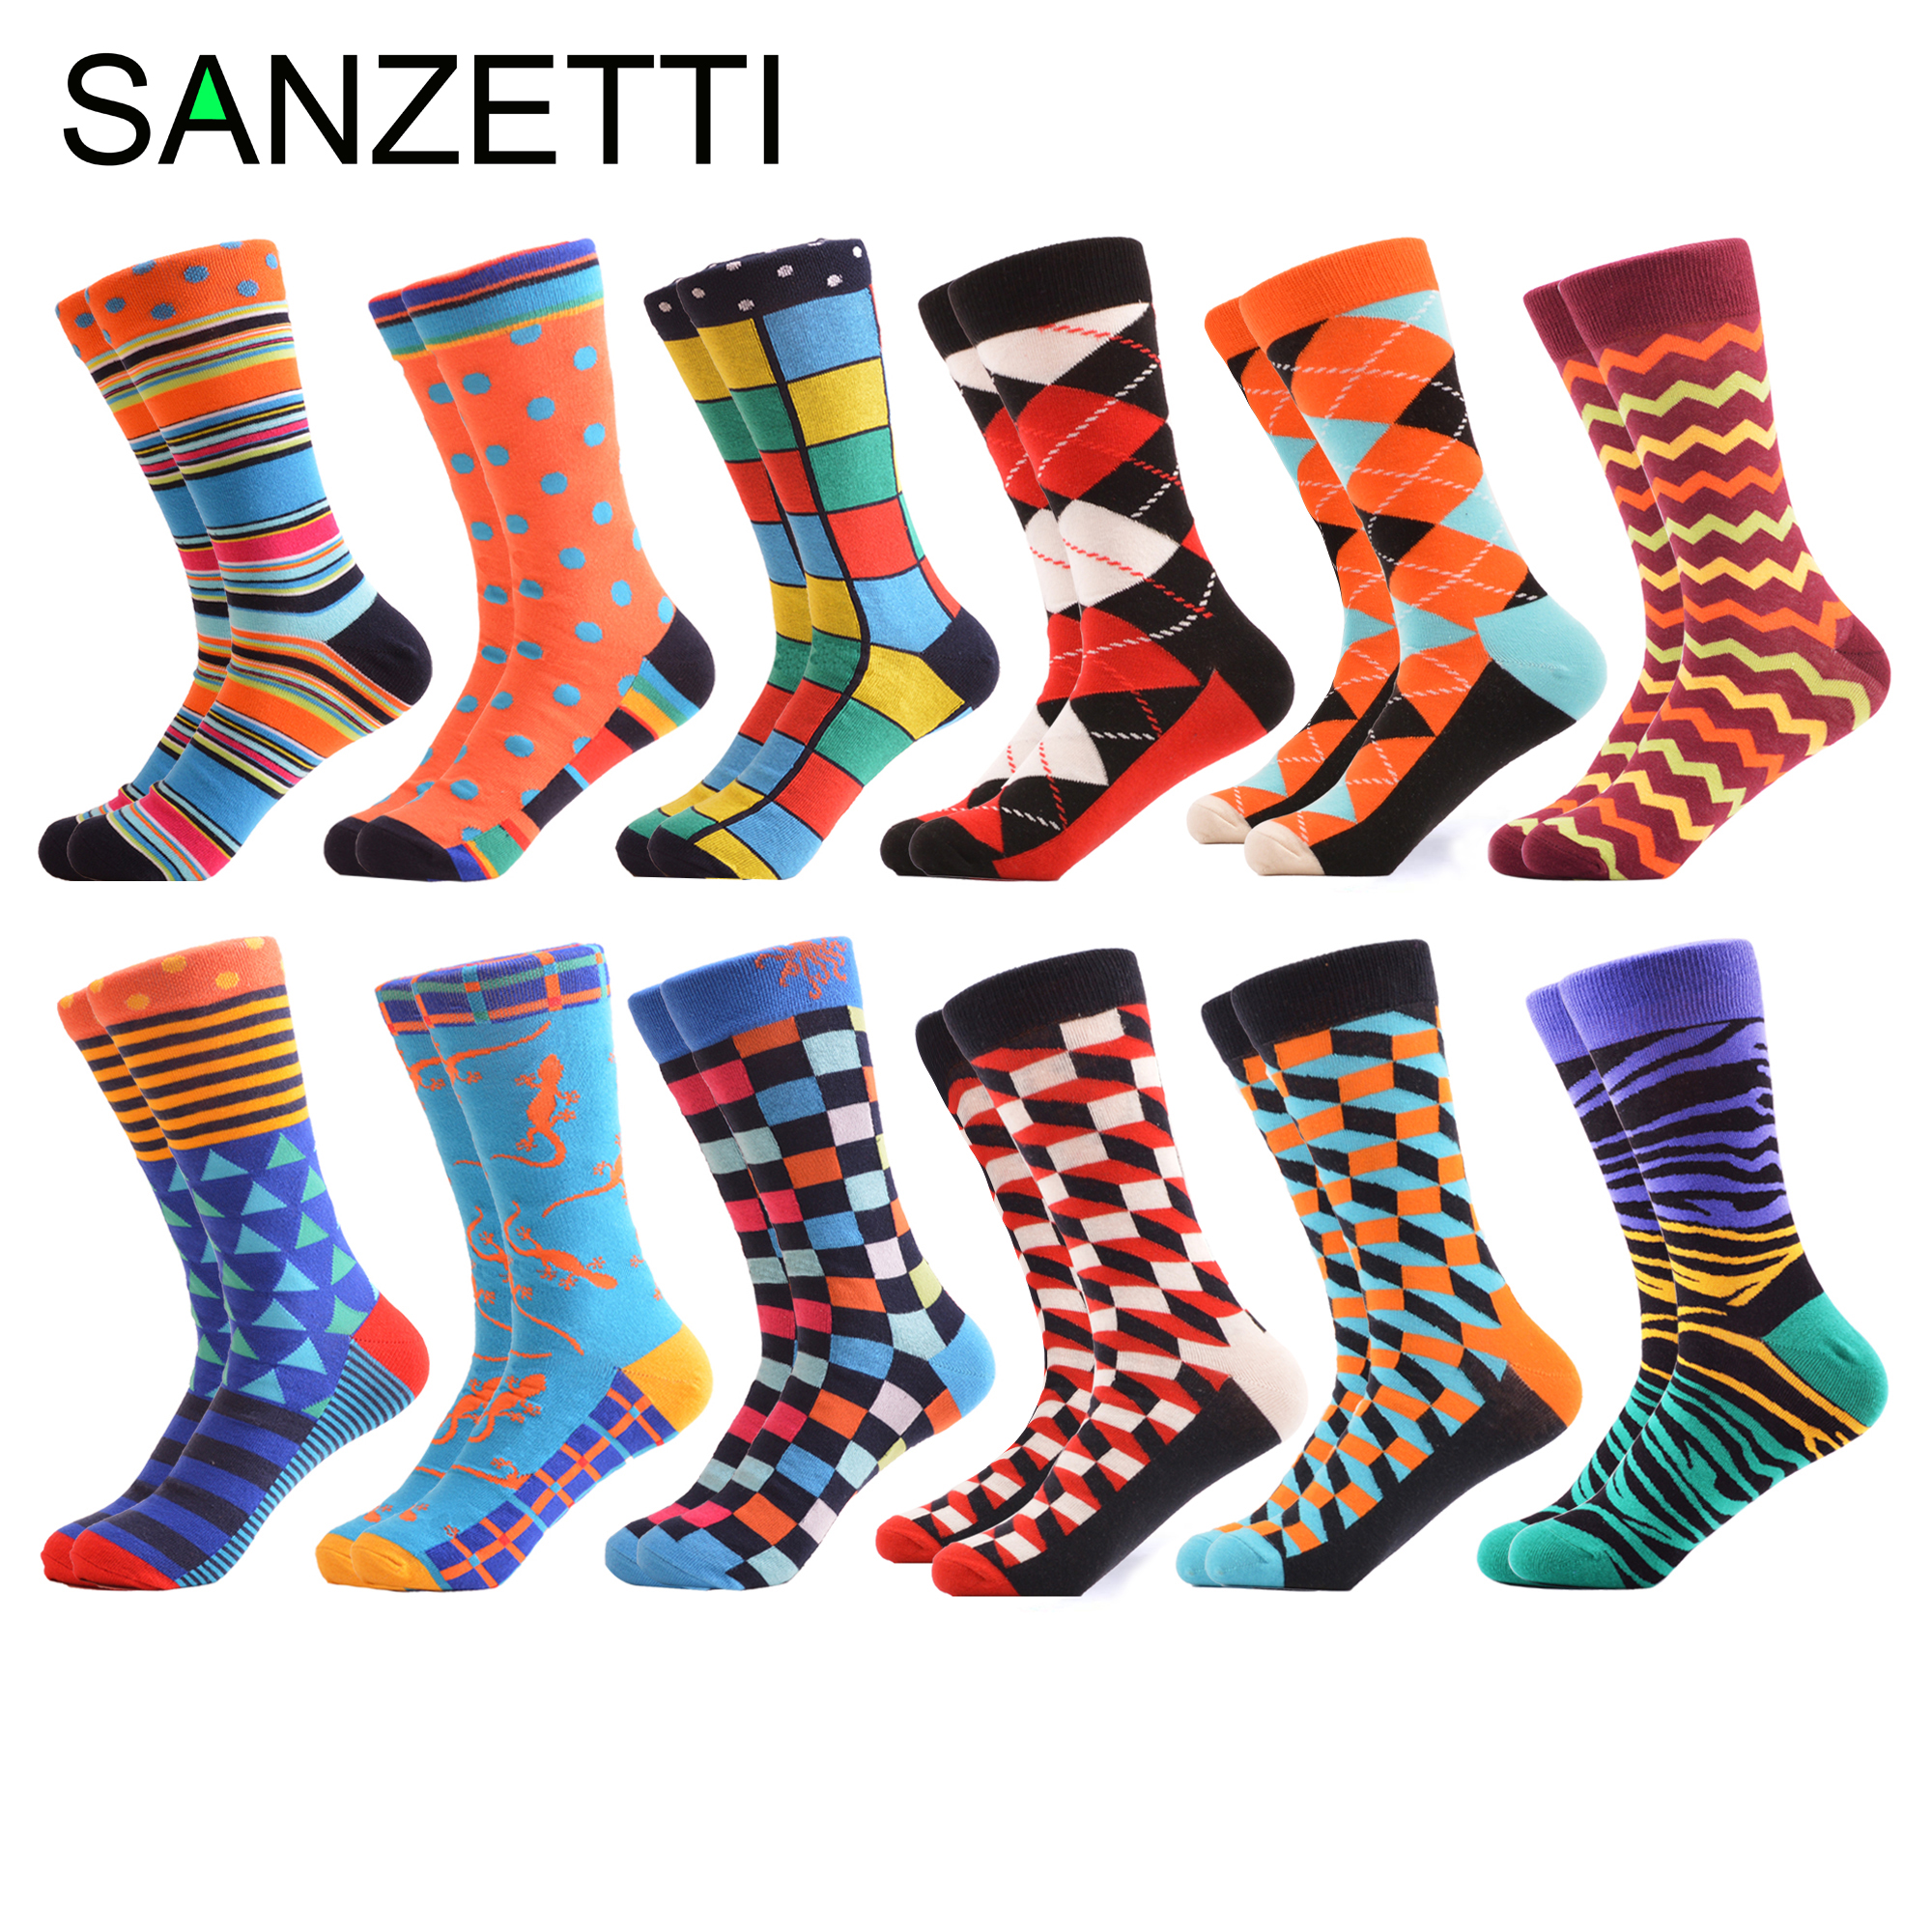 Peonfly Colorful Mens Funny Combed Cotton Crew Dress Wedding Socks Causal Skateboard Socks Novelty Happy Socks Us 7-11 Underwear & Sleepwears